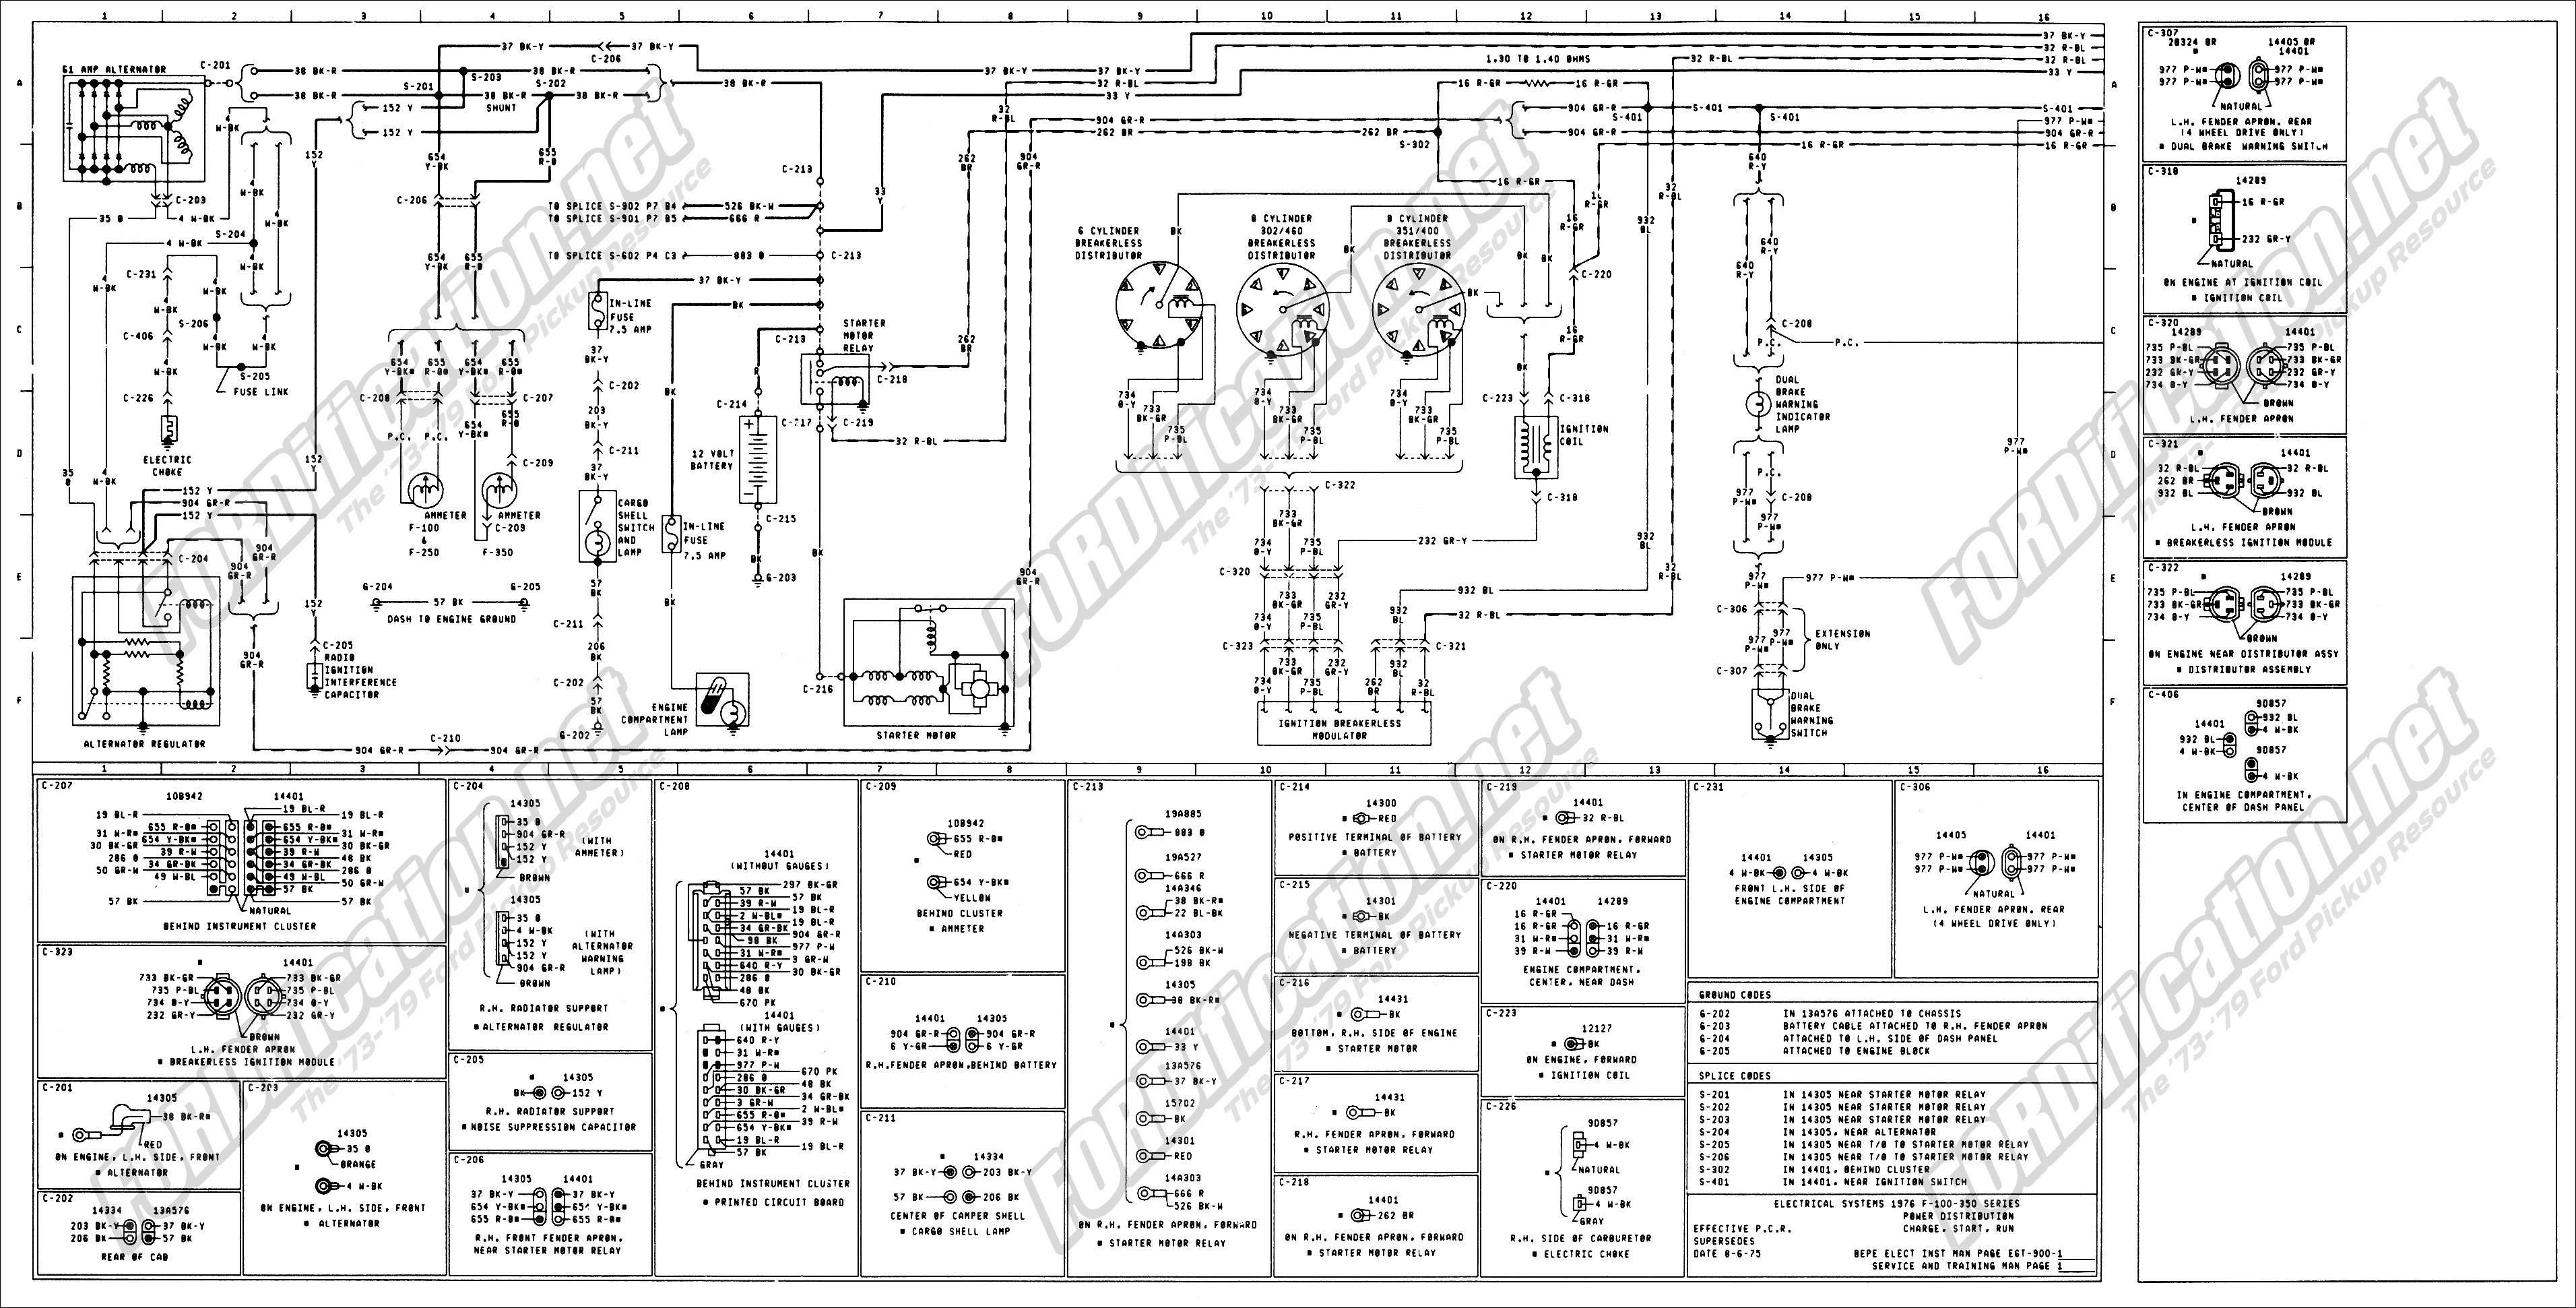 1955 1959 Chevy Truck Wiring Diagram besides 66 Chevy C10 Wiring Diagram moreover HP PartList further Catalog3 additionally Wiring Diagram For 1974 Ford F100. on 1954 cadillac wiring diagram